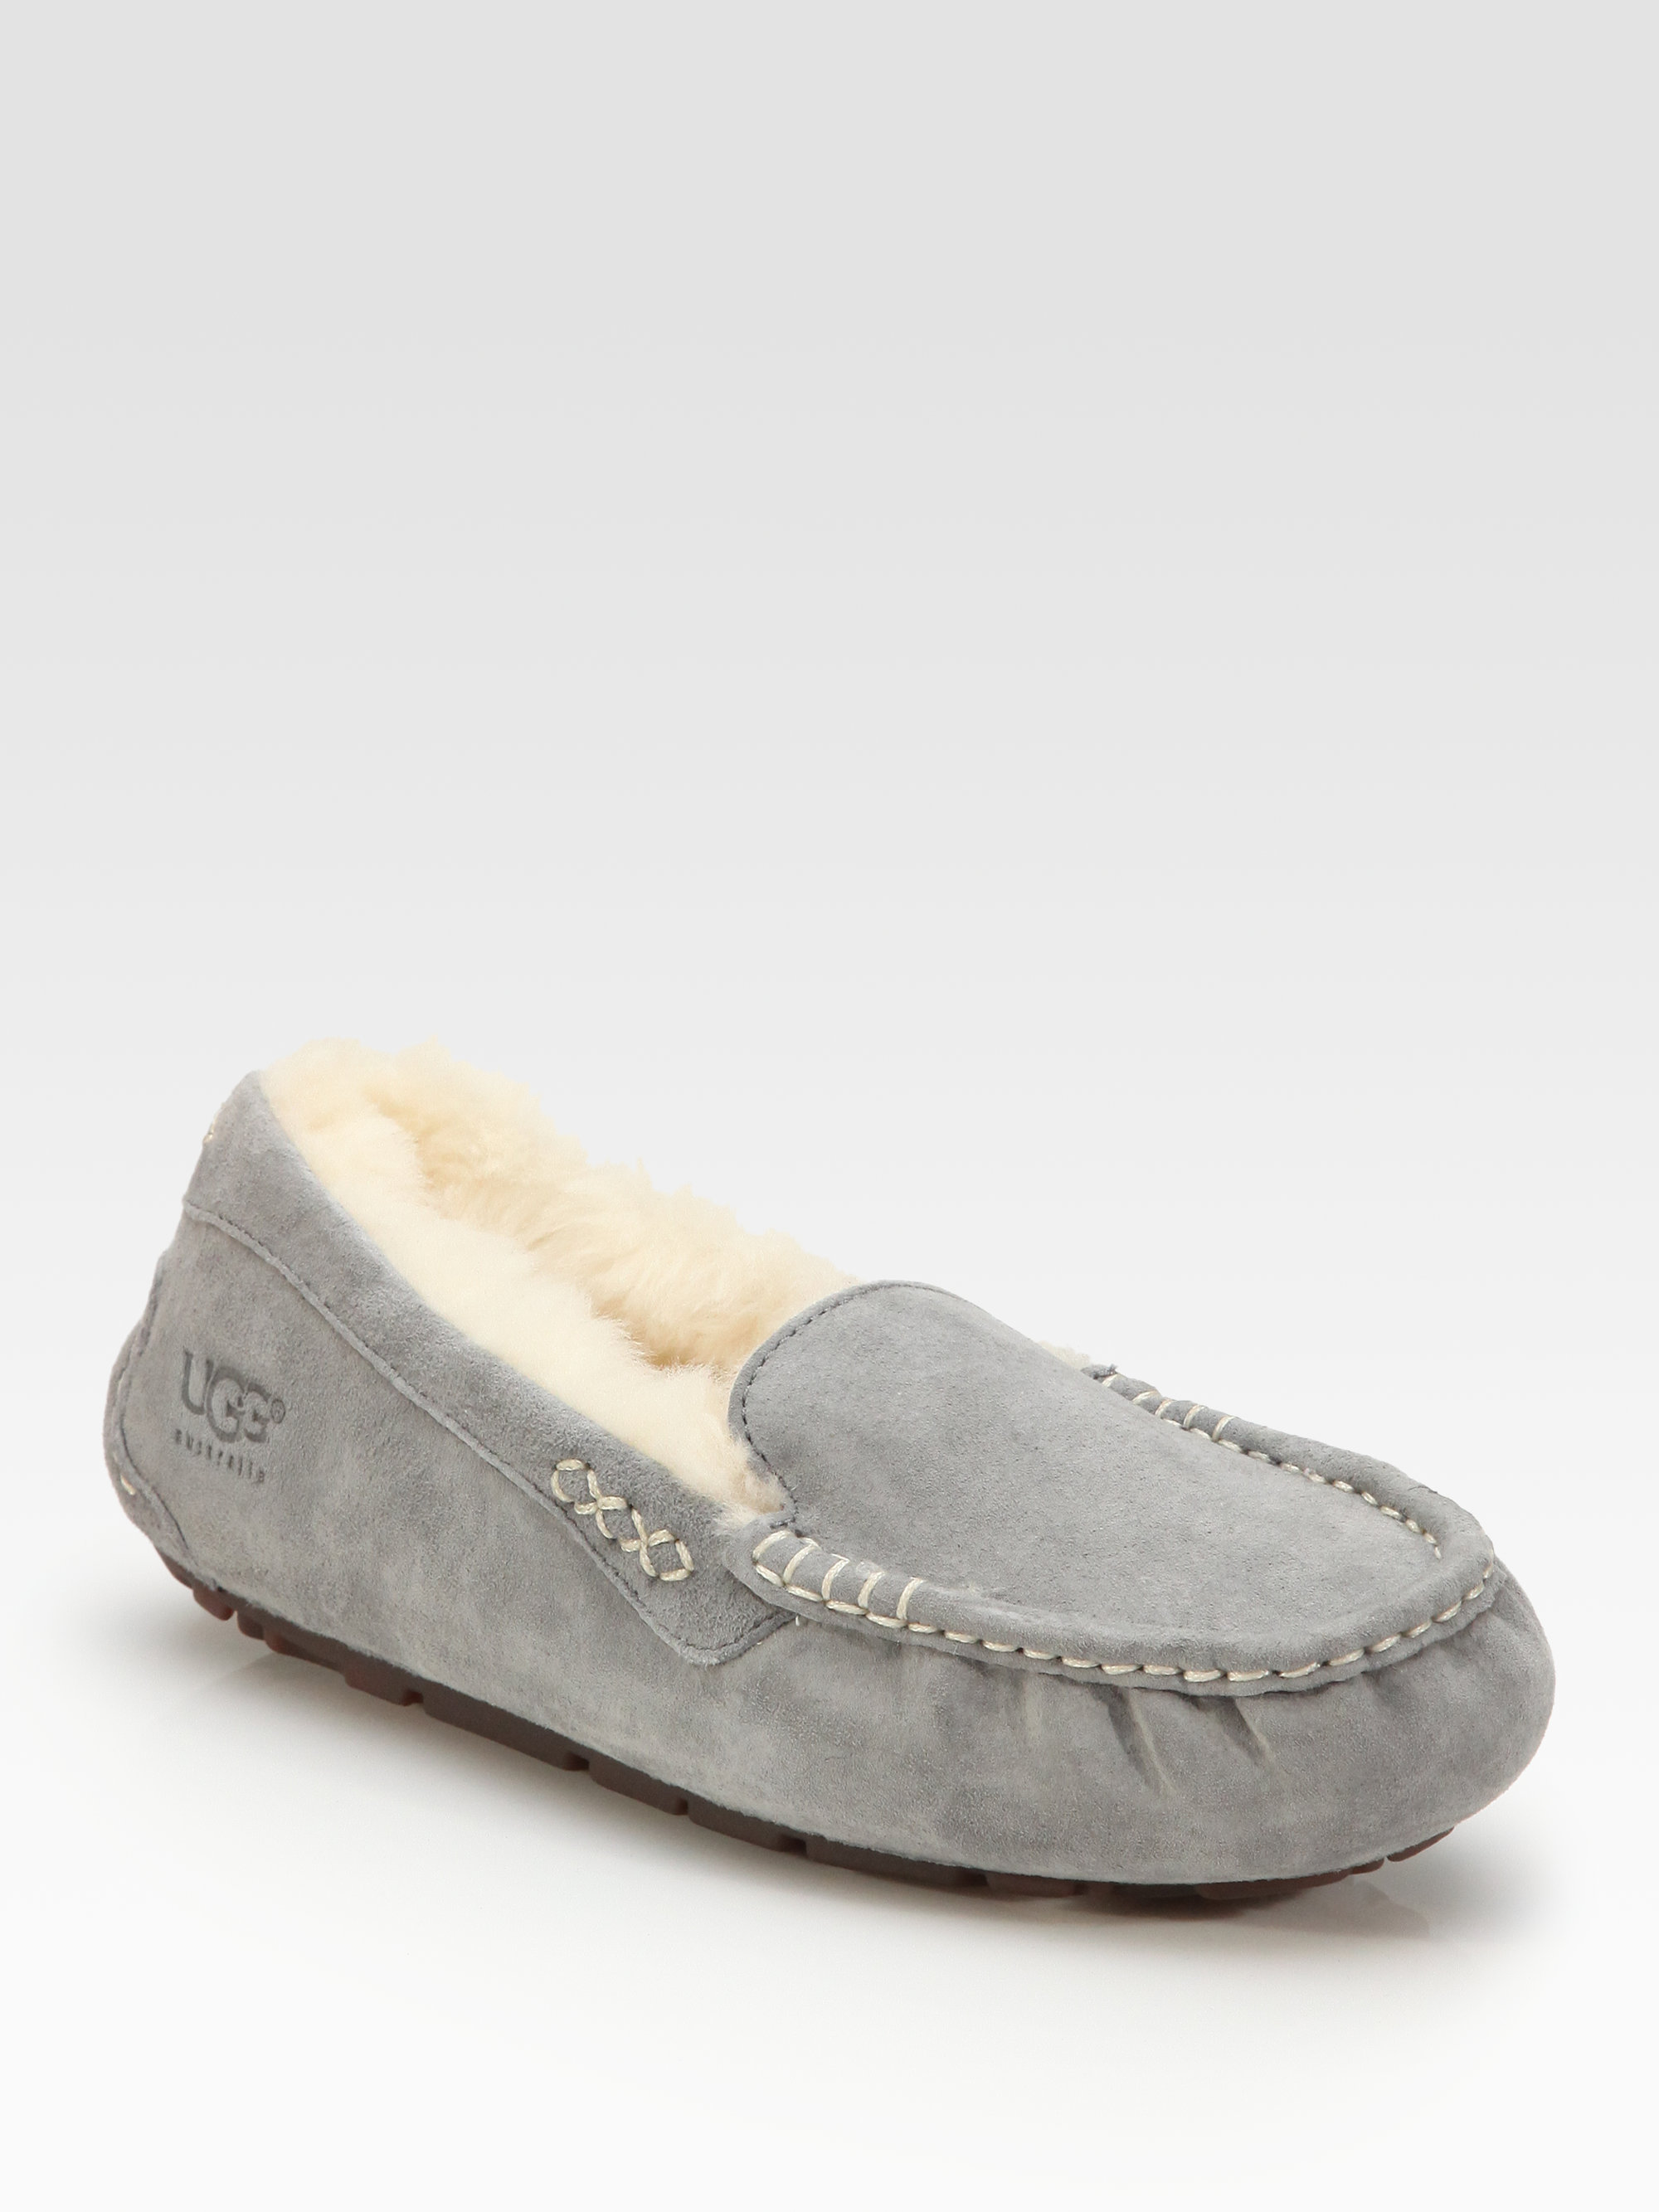 ugg slippers gray